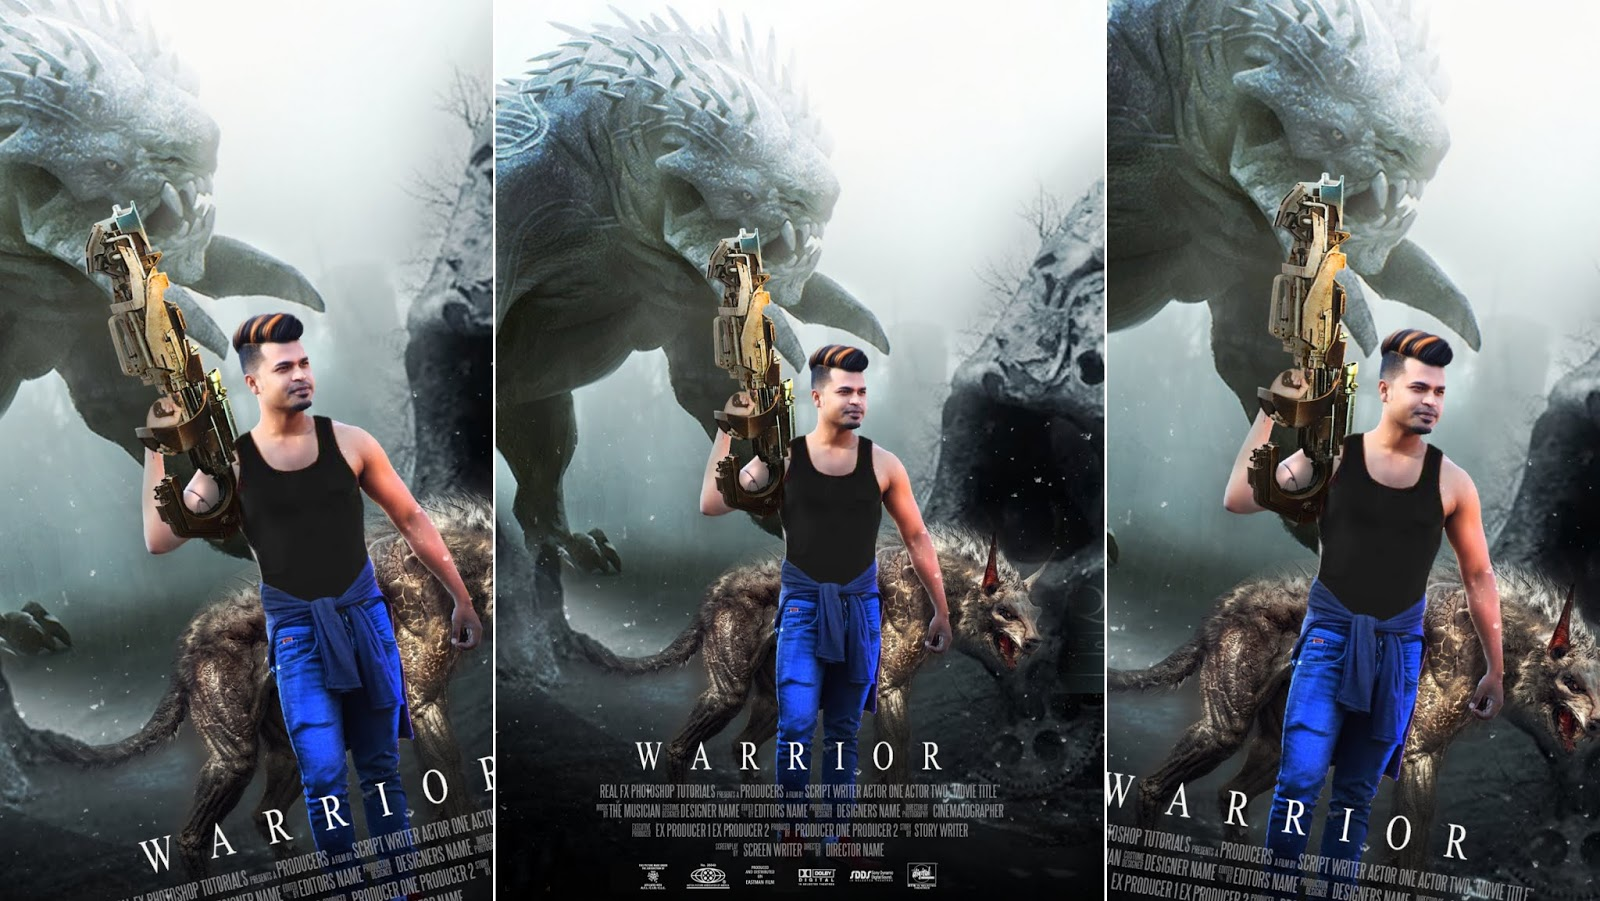 Warrior Movie Poster Photo Editing Background Png Download